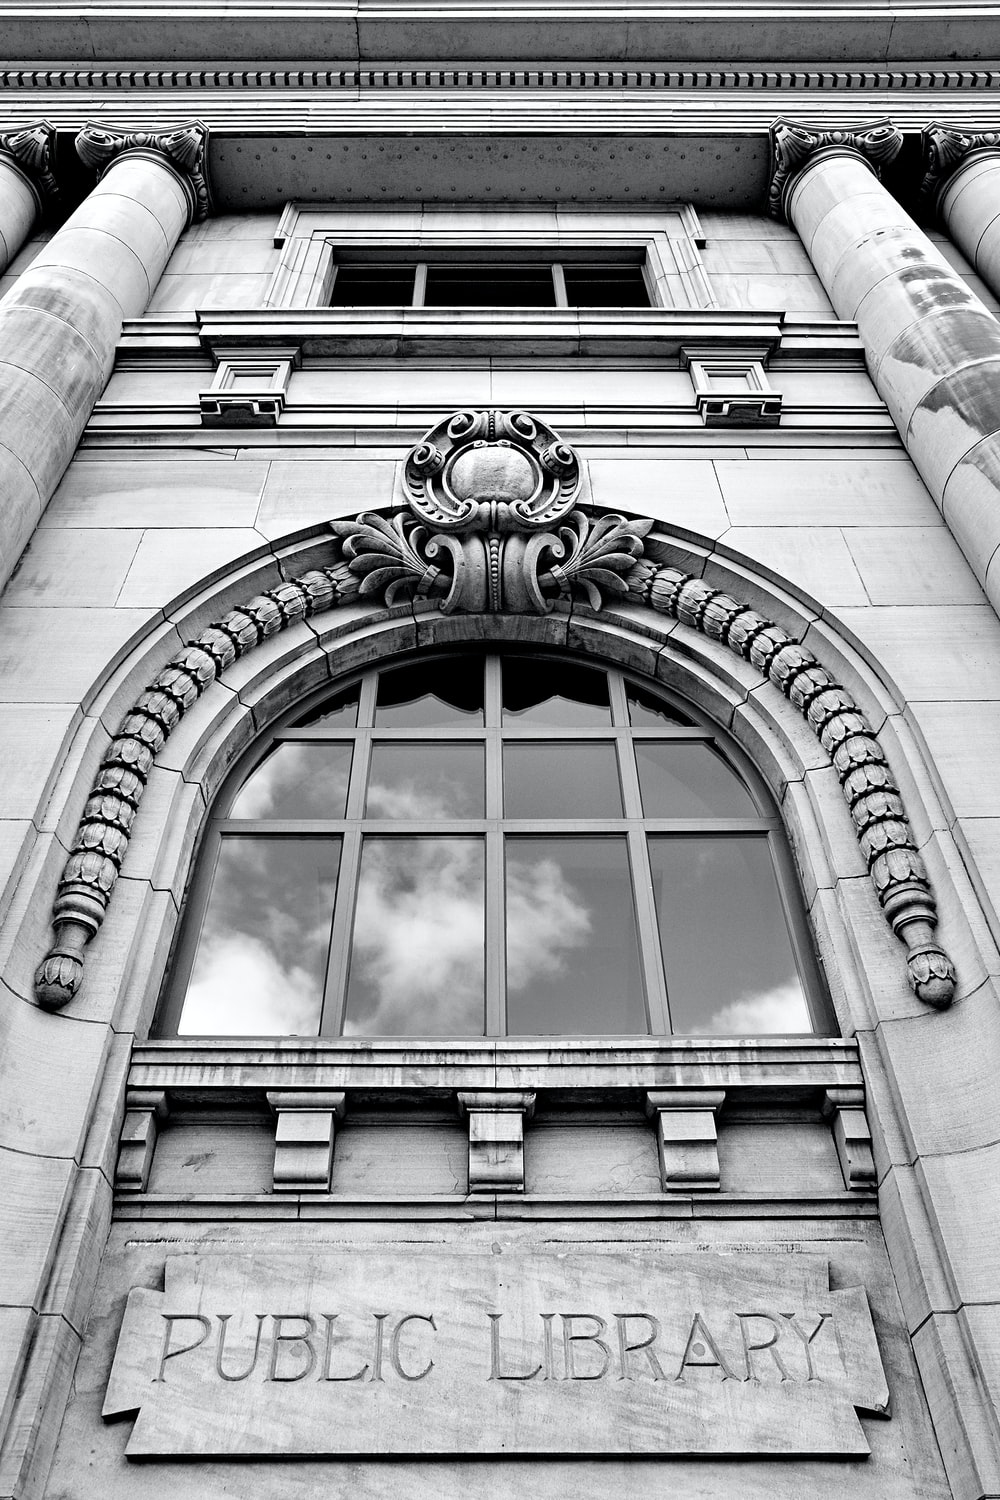 low-angle photography of Public Library arch window